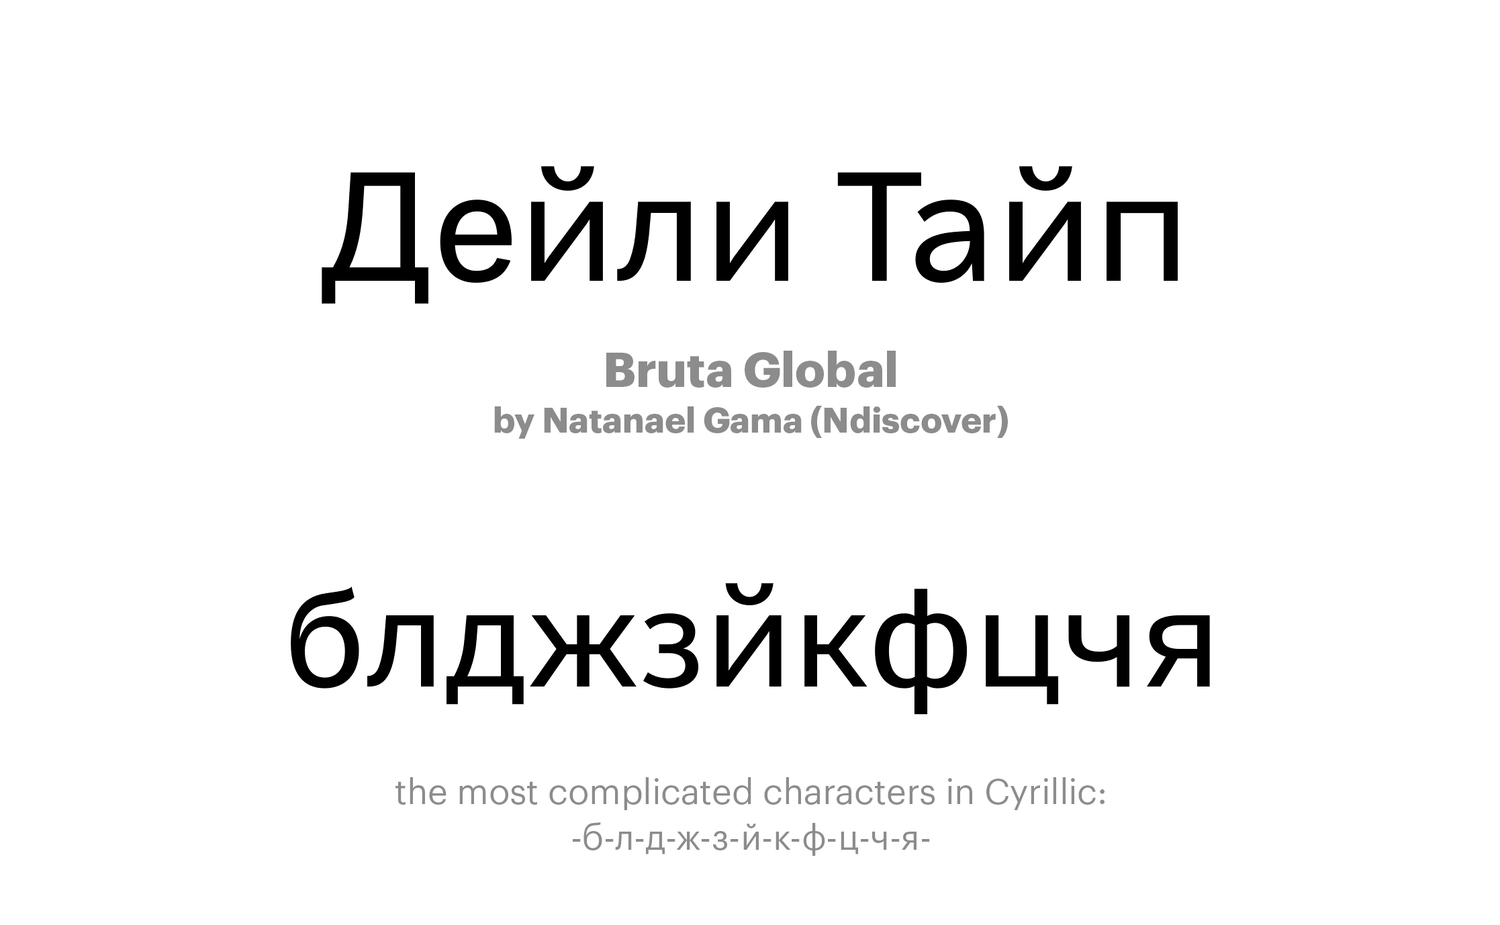 Bruta-Global-by-Natanael-Gama-(Ndiscover)